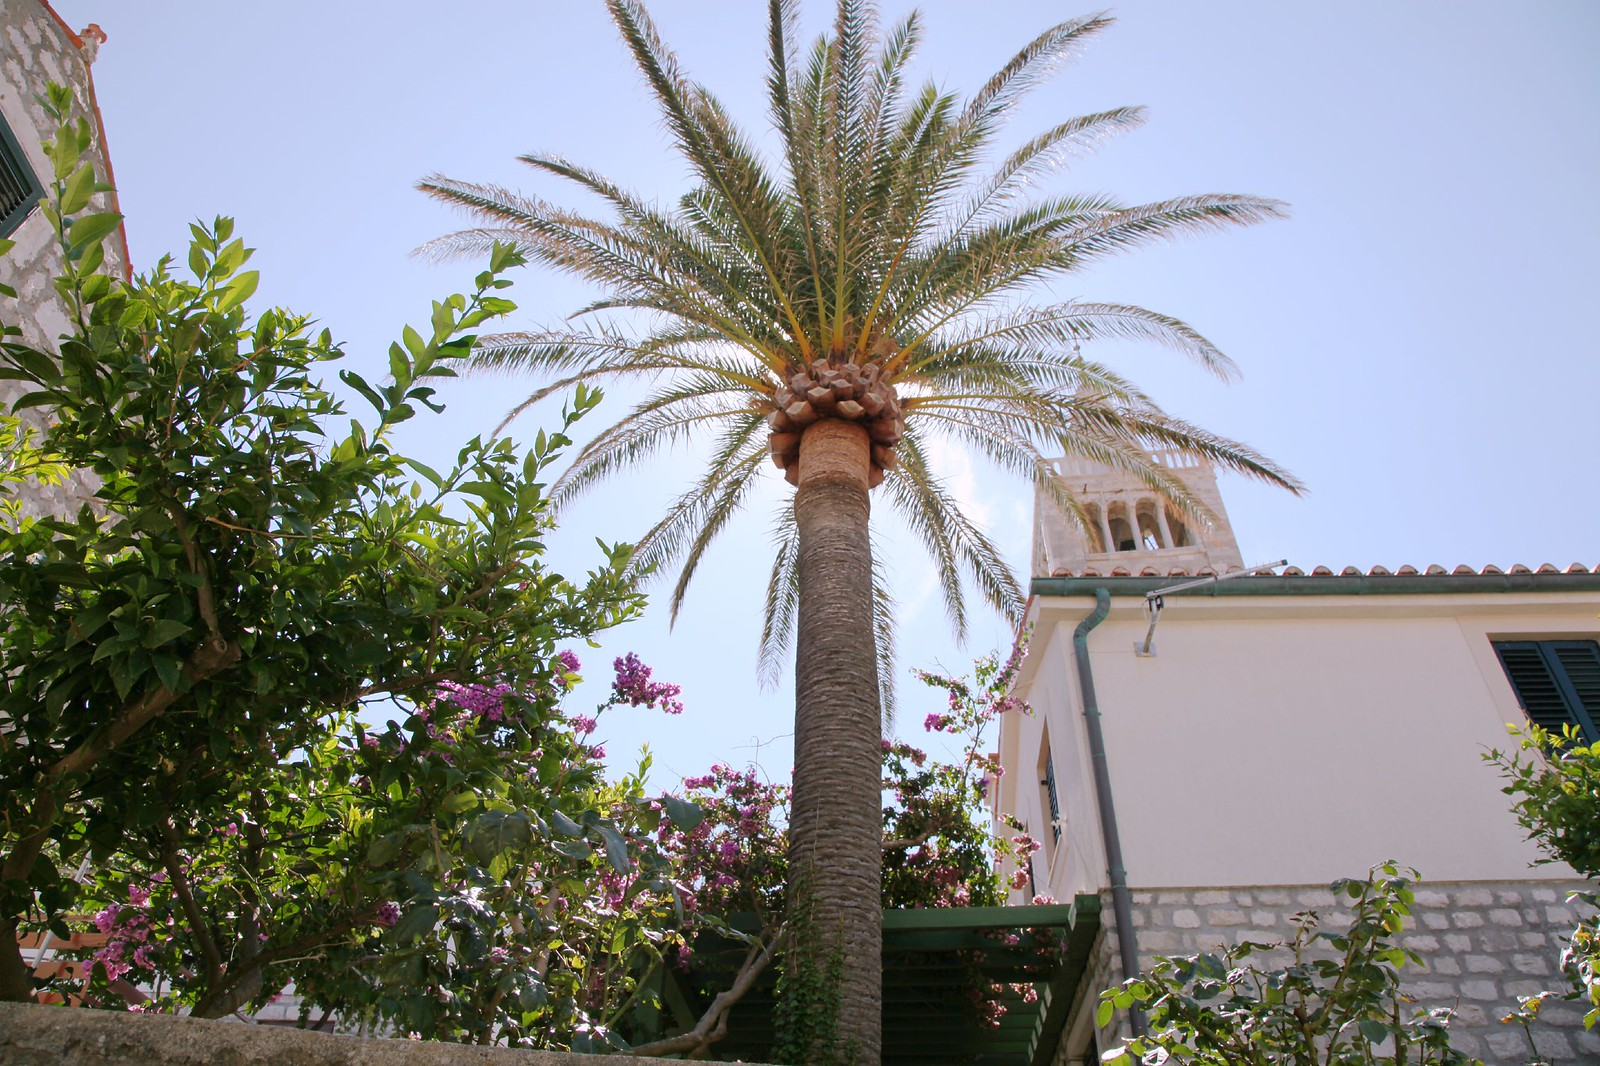 rab island croatia church palm tree summer 2015 vacation rabb